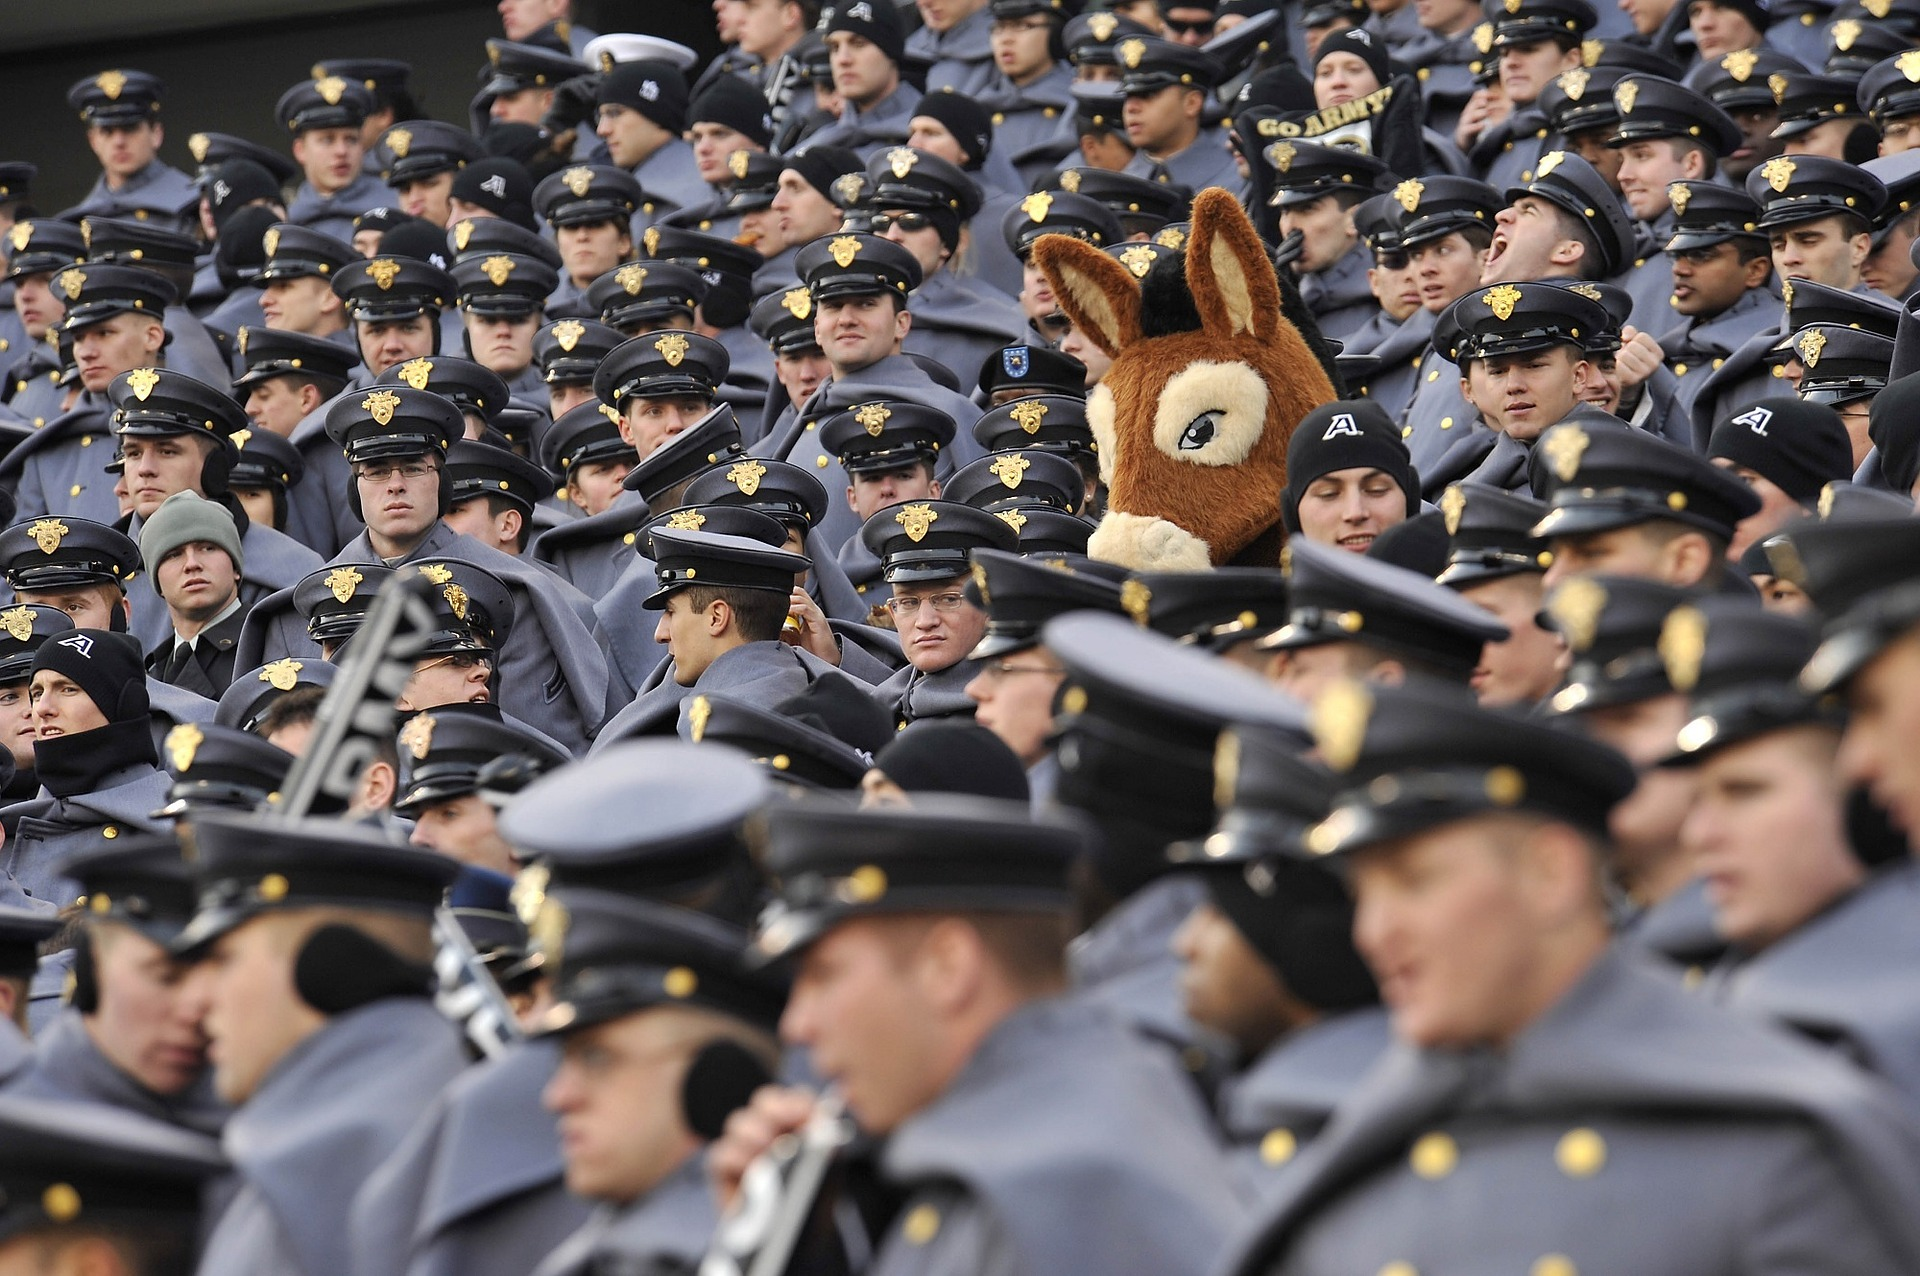 crowd of identically uniformed military personnel and one person in donkey costume in the middle